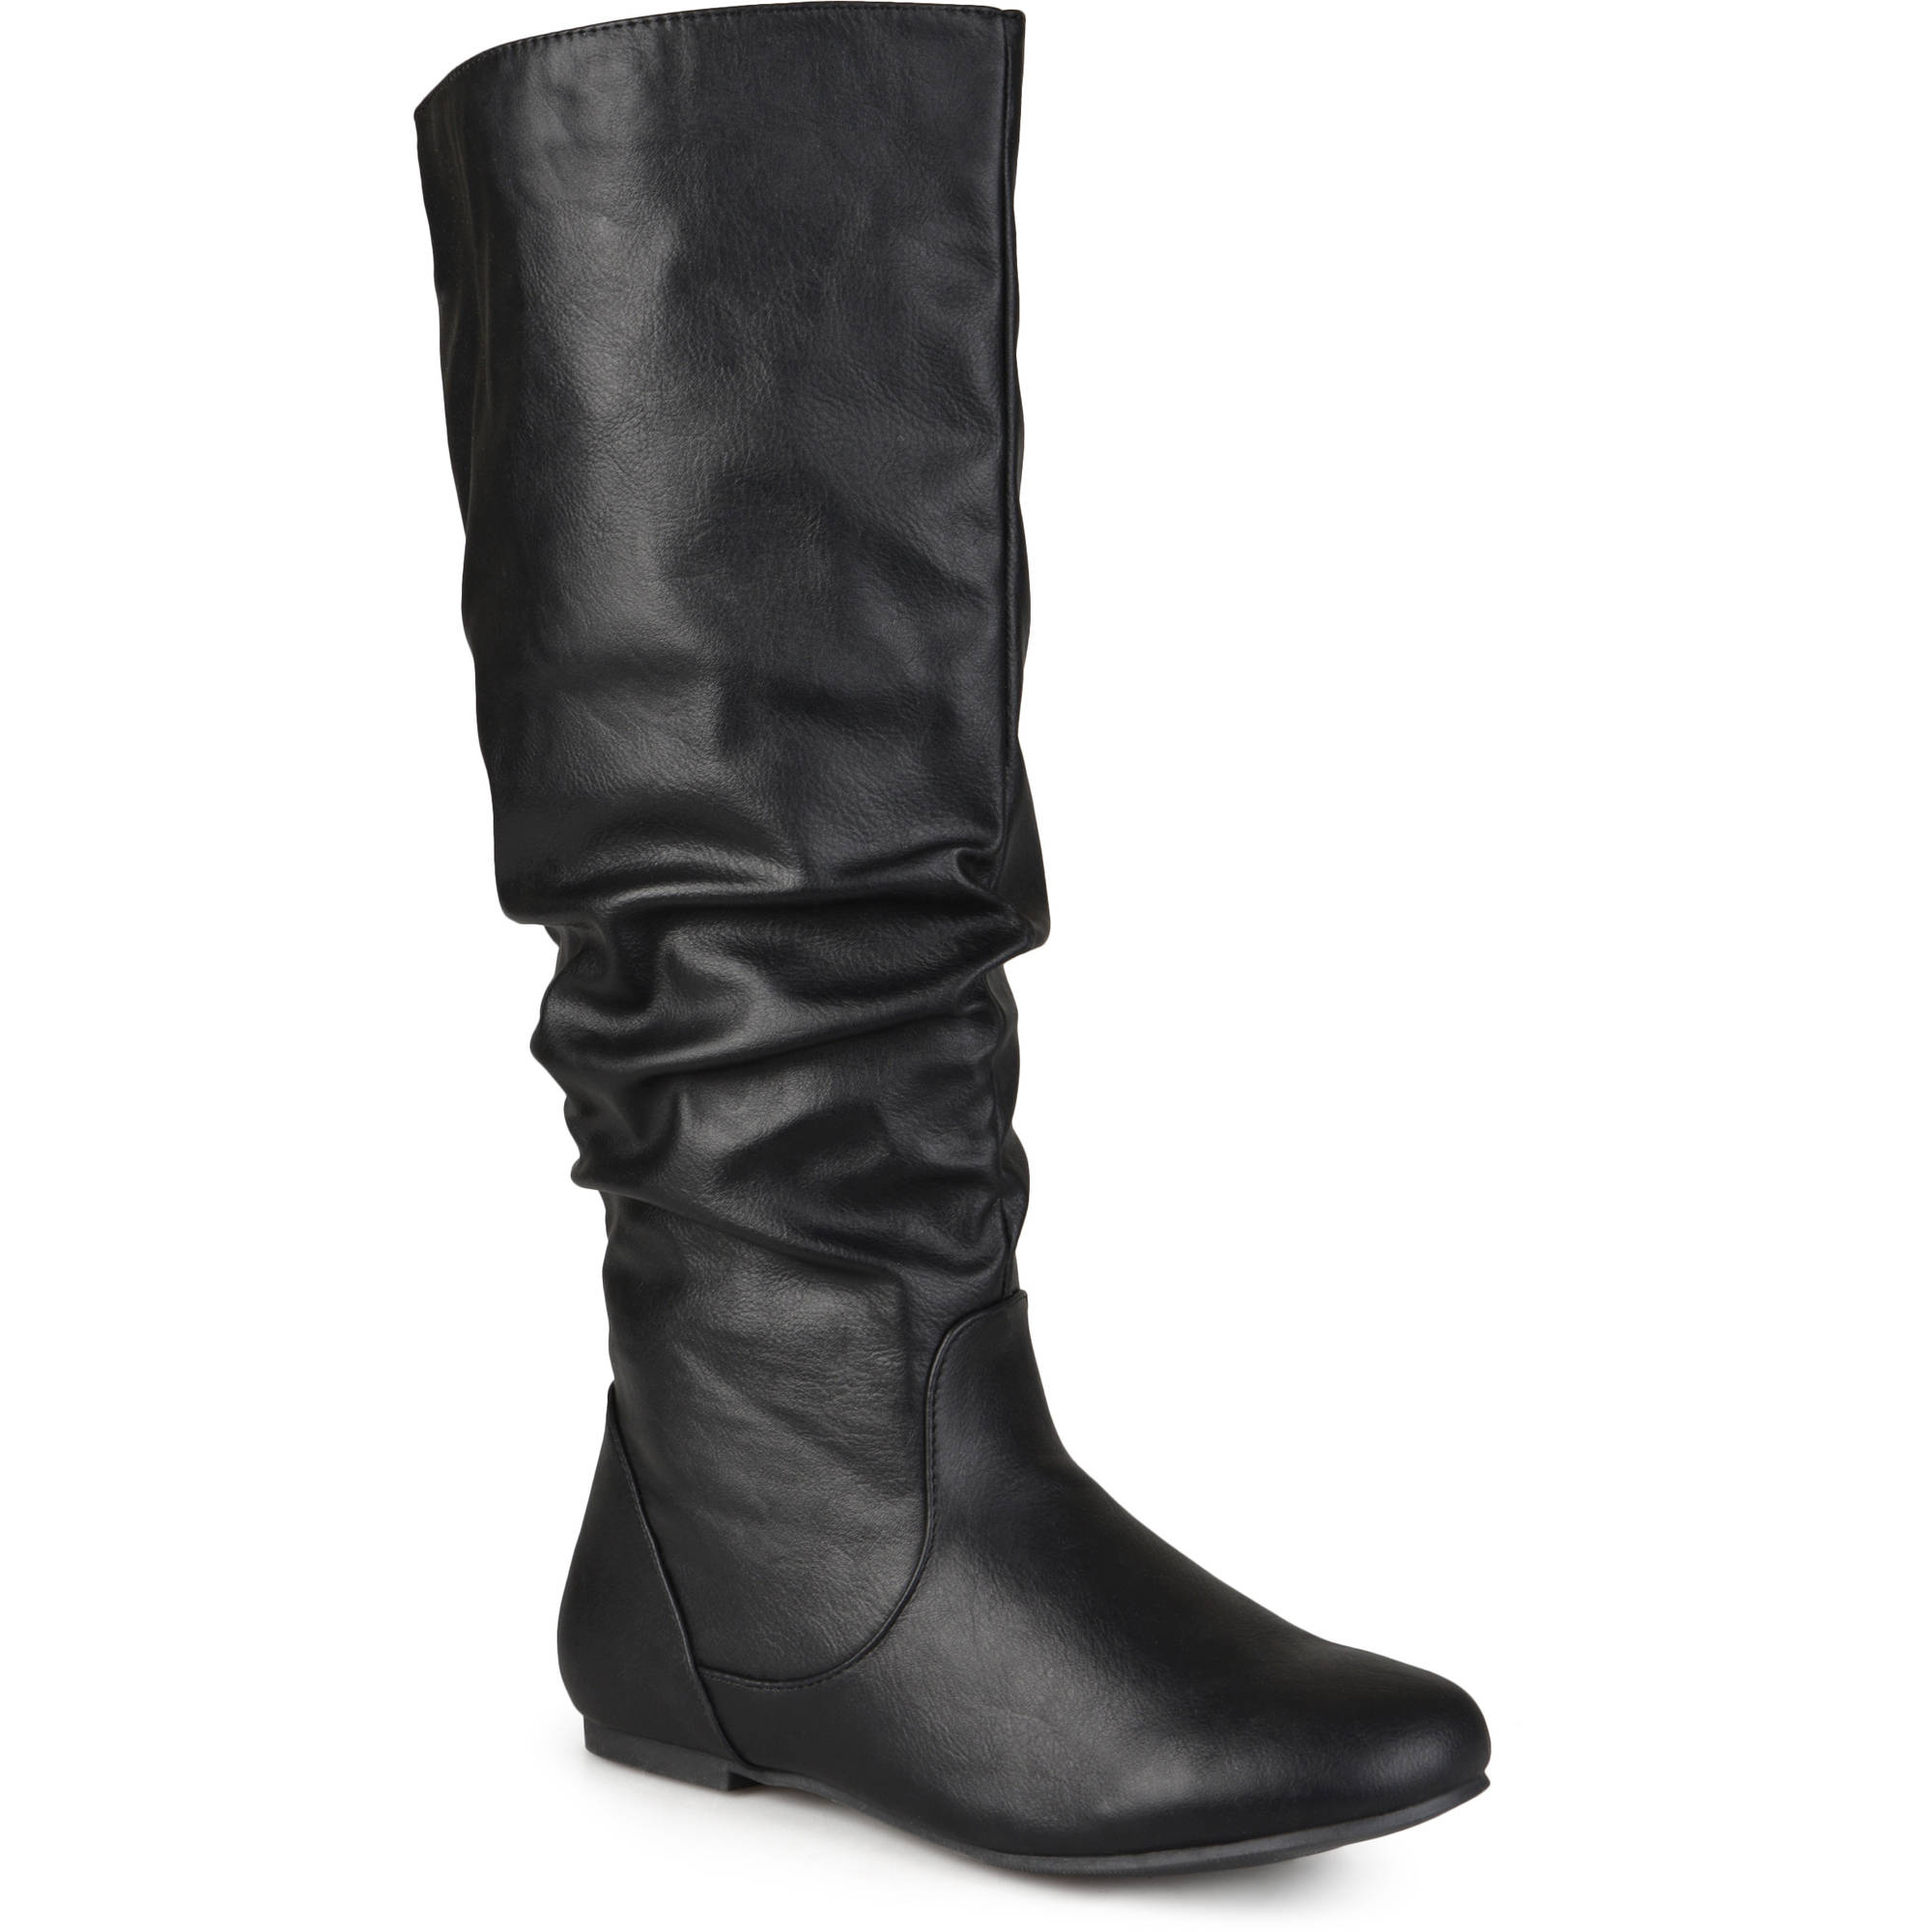 0656f733c2d Women s Extra Wide Calf Knee High Faux Leather Riding Boots - Walmart.com